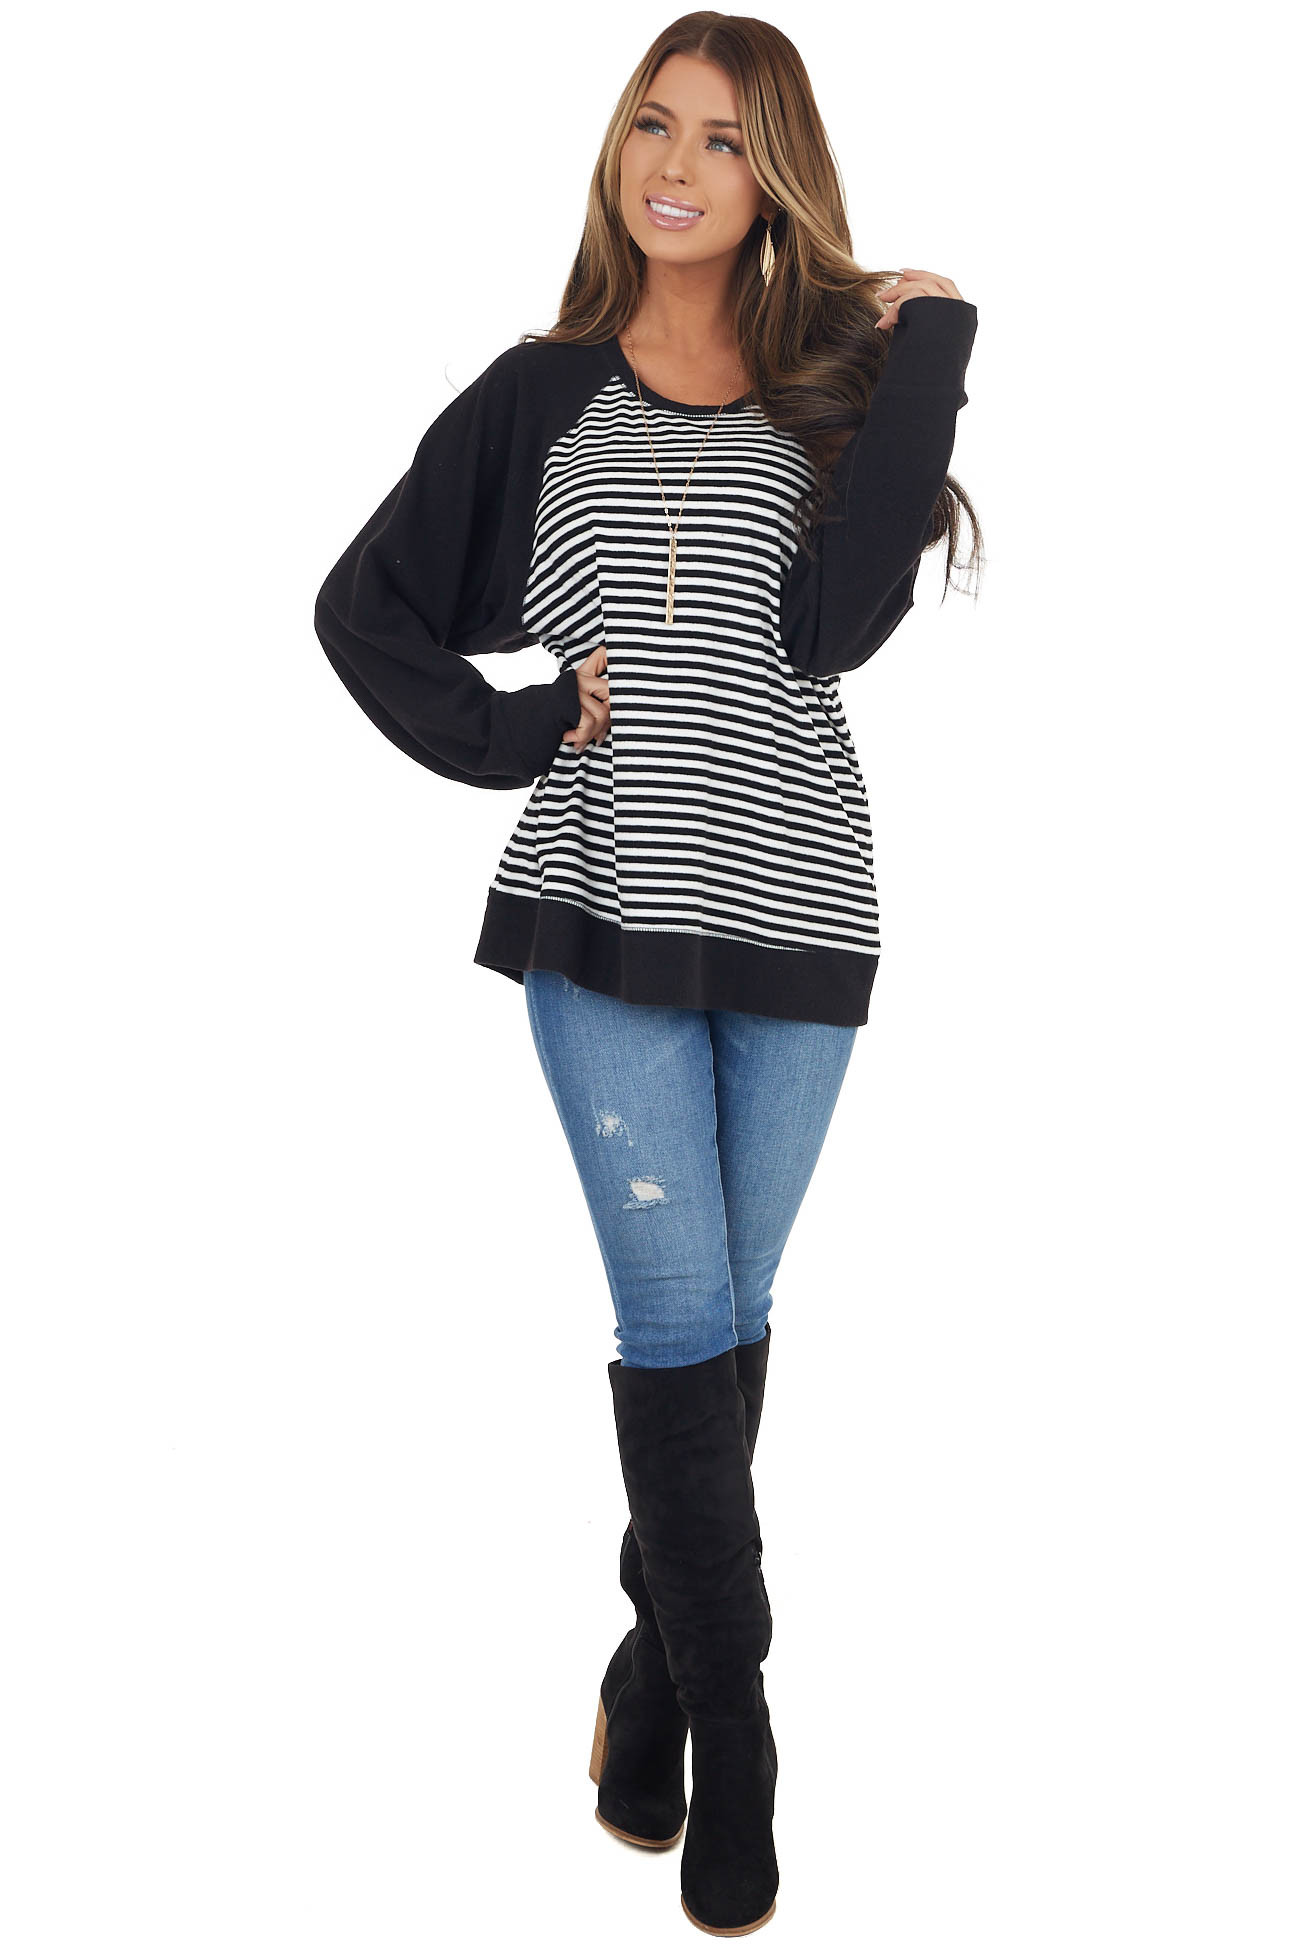 Black and White Striped Soft Knit Top with Contrast Sleeves